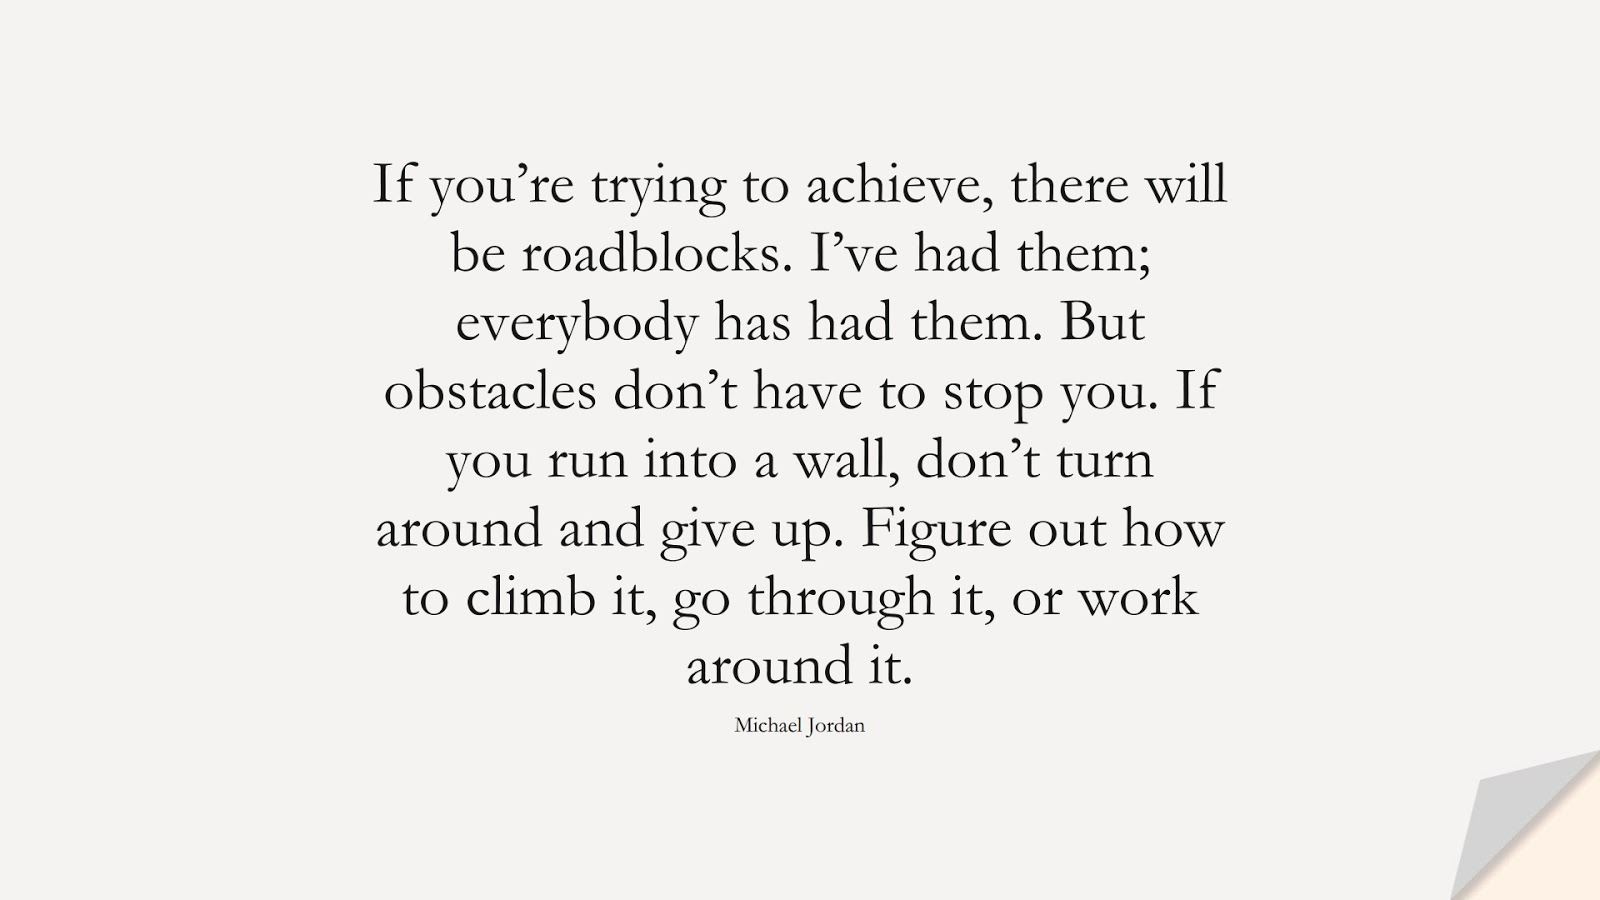 If you're trying to achieve, there will be roadblocks. I've had them; everybody has had them. But obstacles don't have to stop you. If you run into a wall, don't turn around and give up. Figure out how to climb it, go through it, or work around it. (Michael Jordan);  #NeverGiveUpQuotes